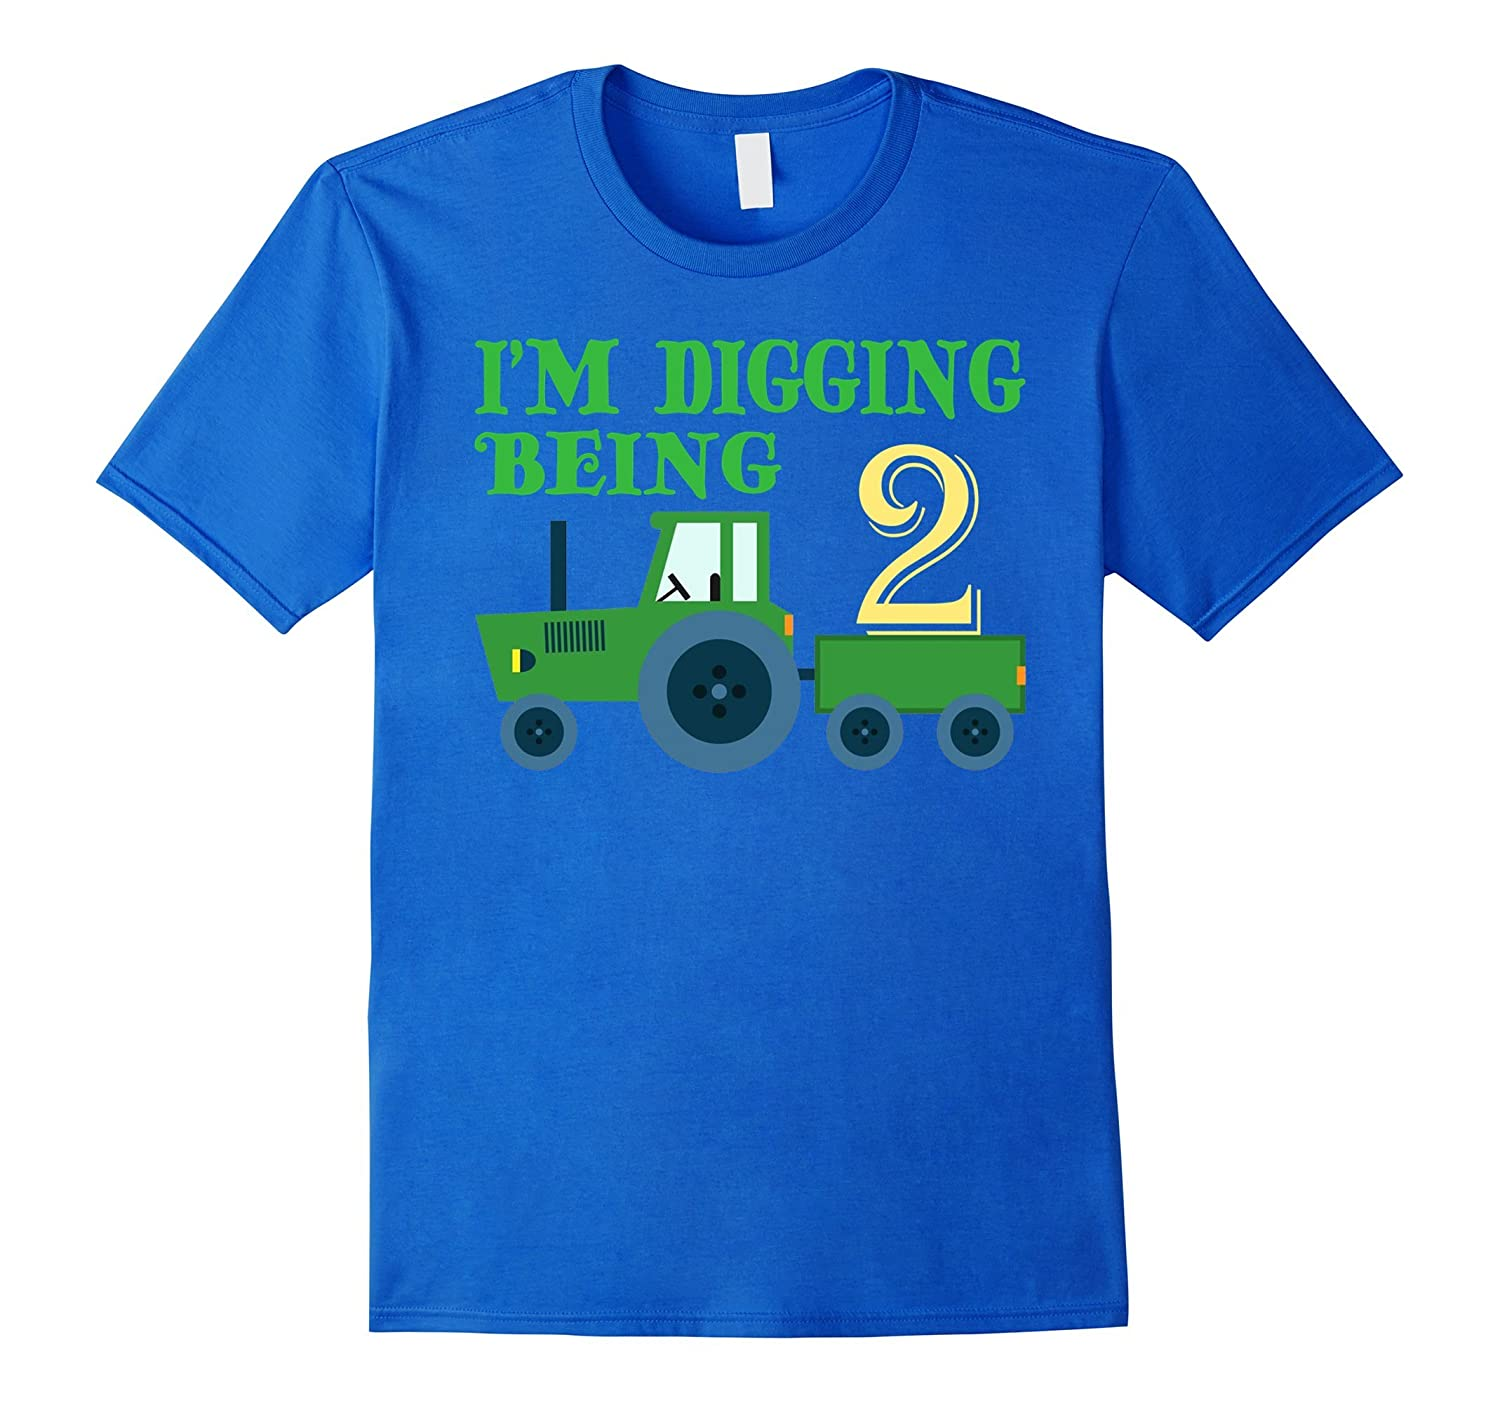 2 Year Old Tractor Birthday Shirt Im Digging Being CL